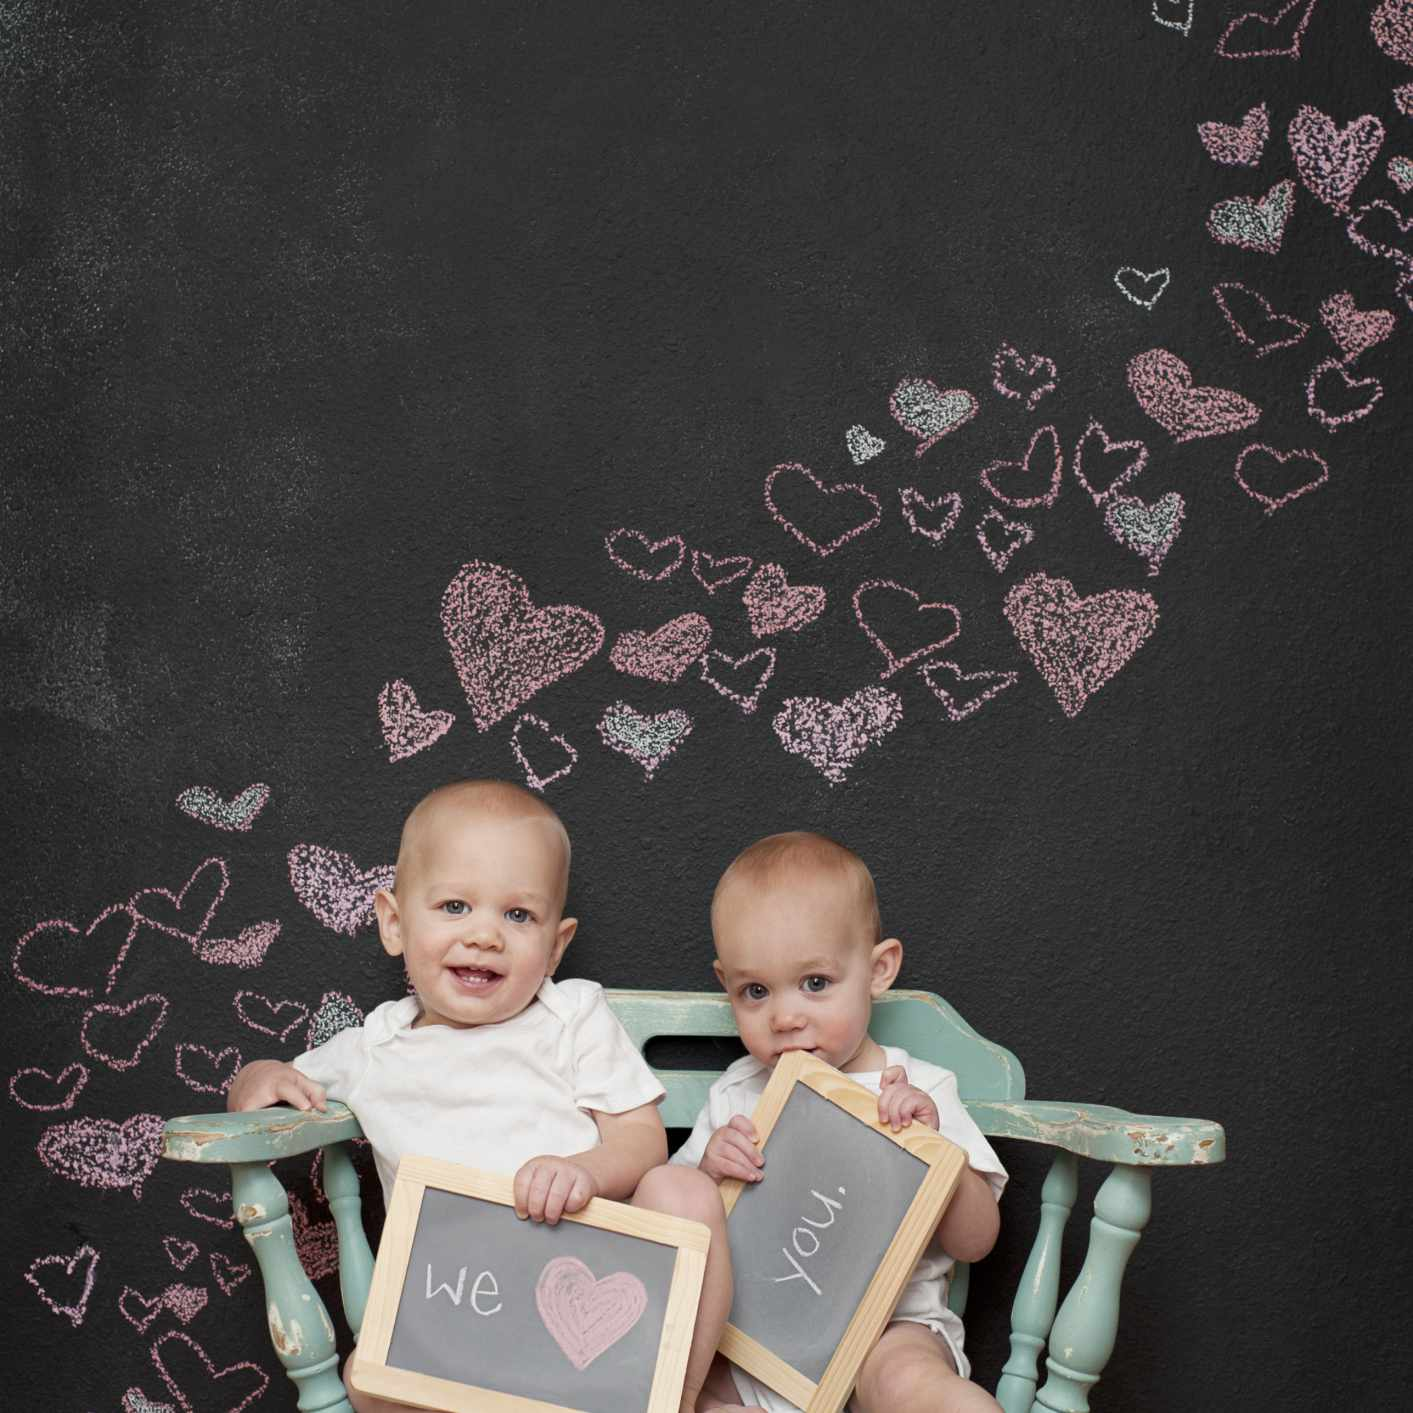 twins with valentine's message